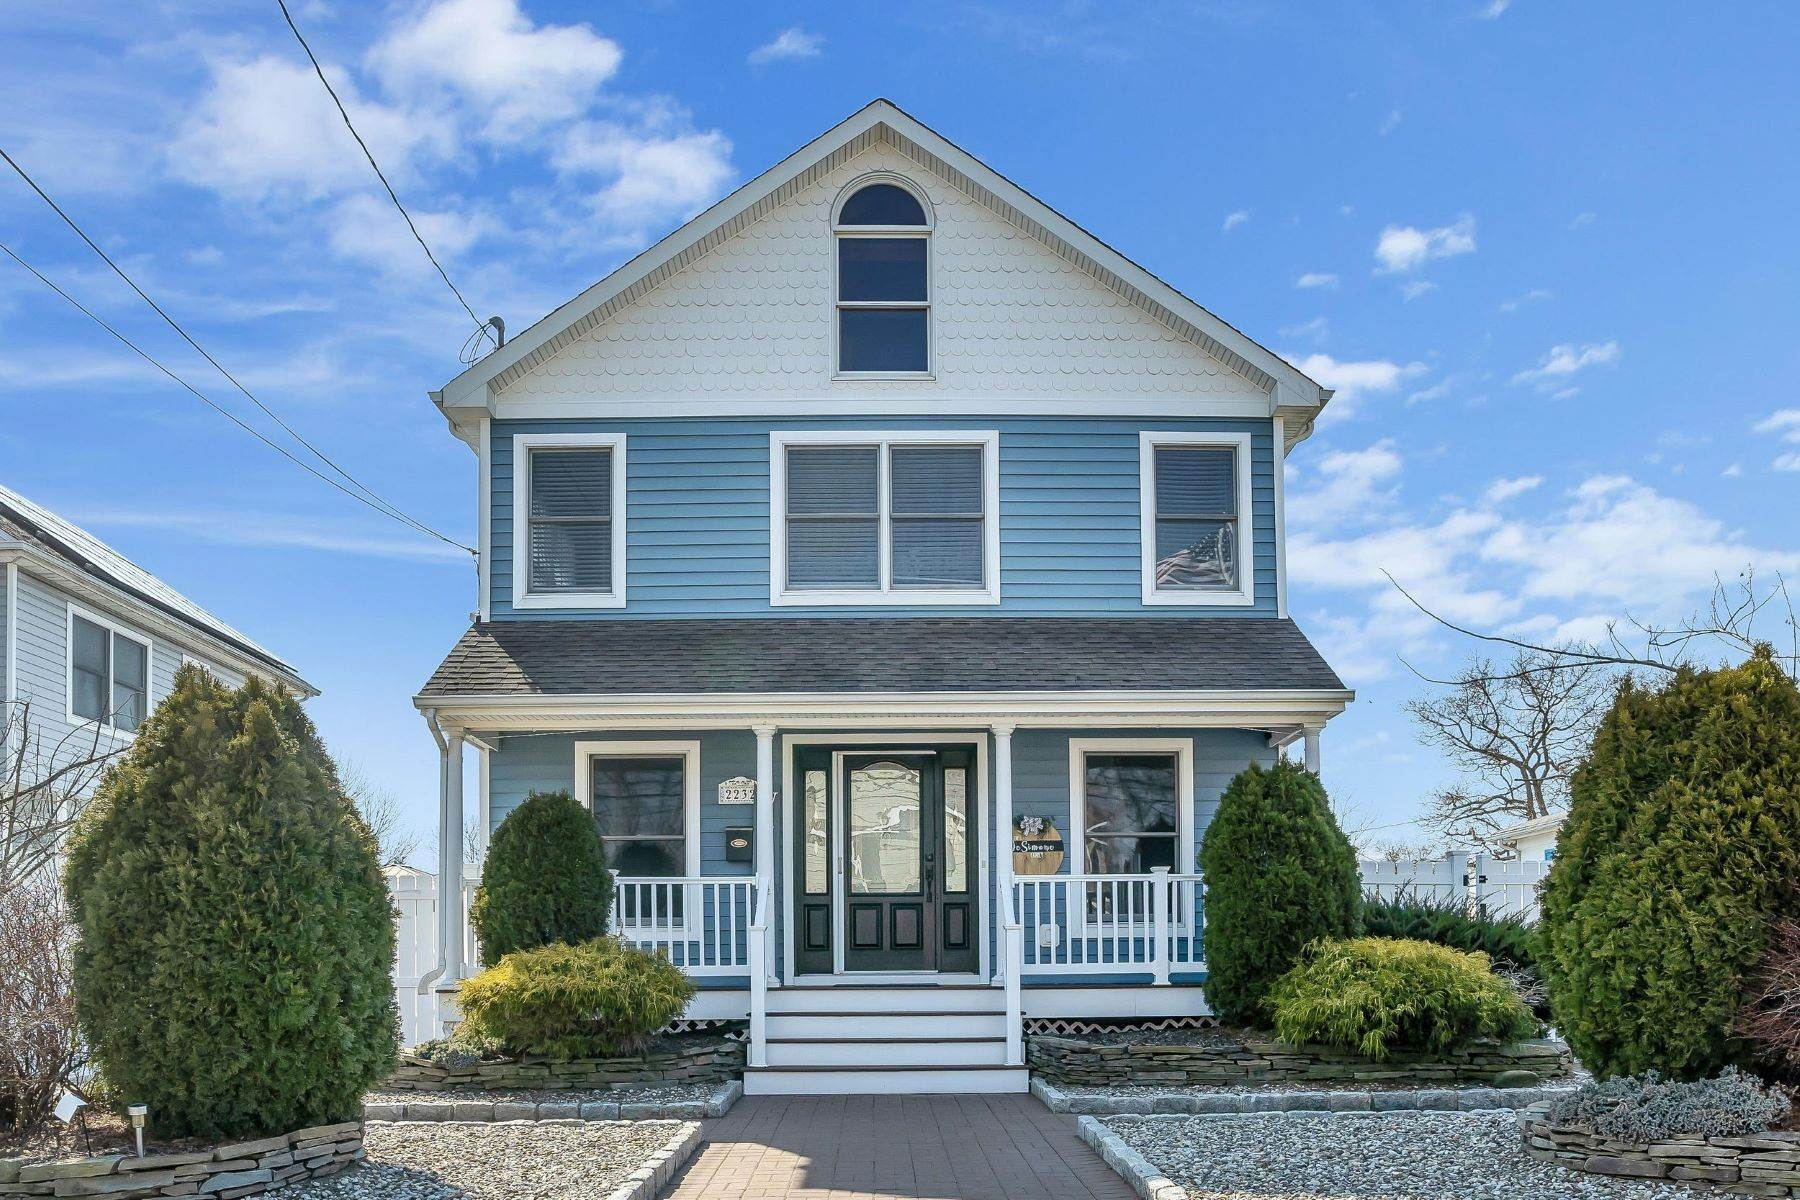 Single Family Homes for Sale at Warm and Modern 2232 Foster Road Point Pleasant, New Jersey 08742 United States